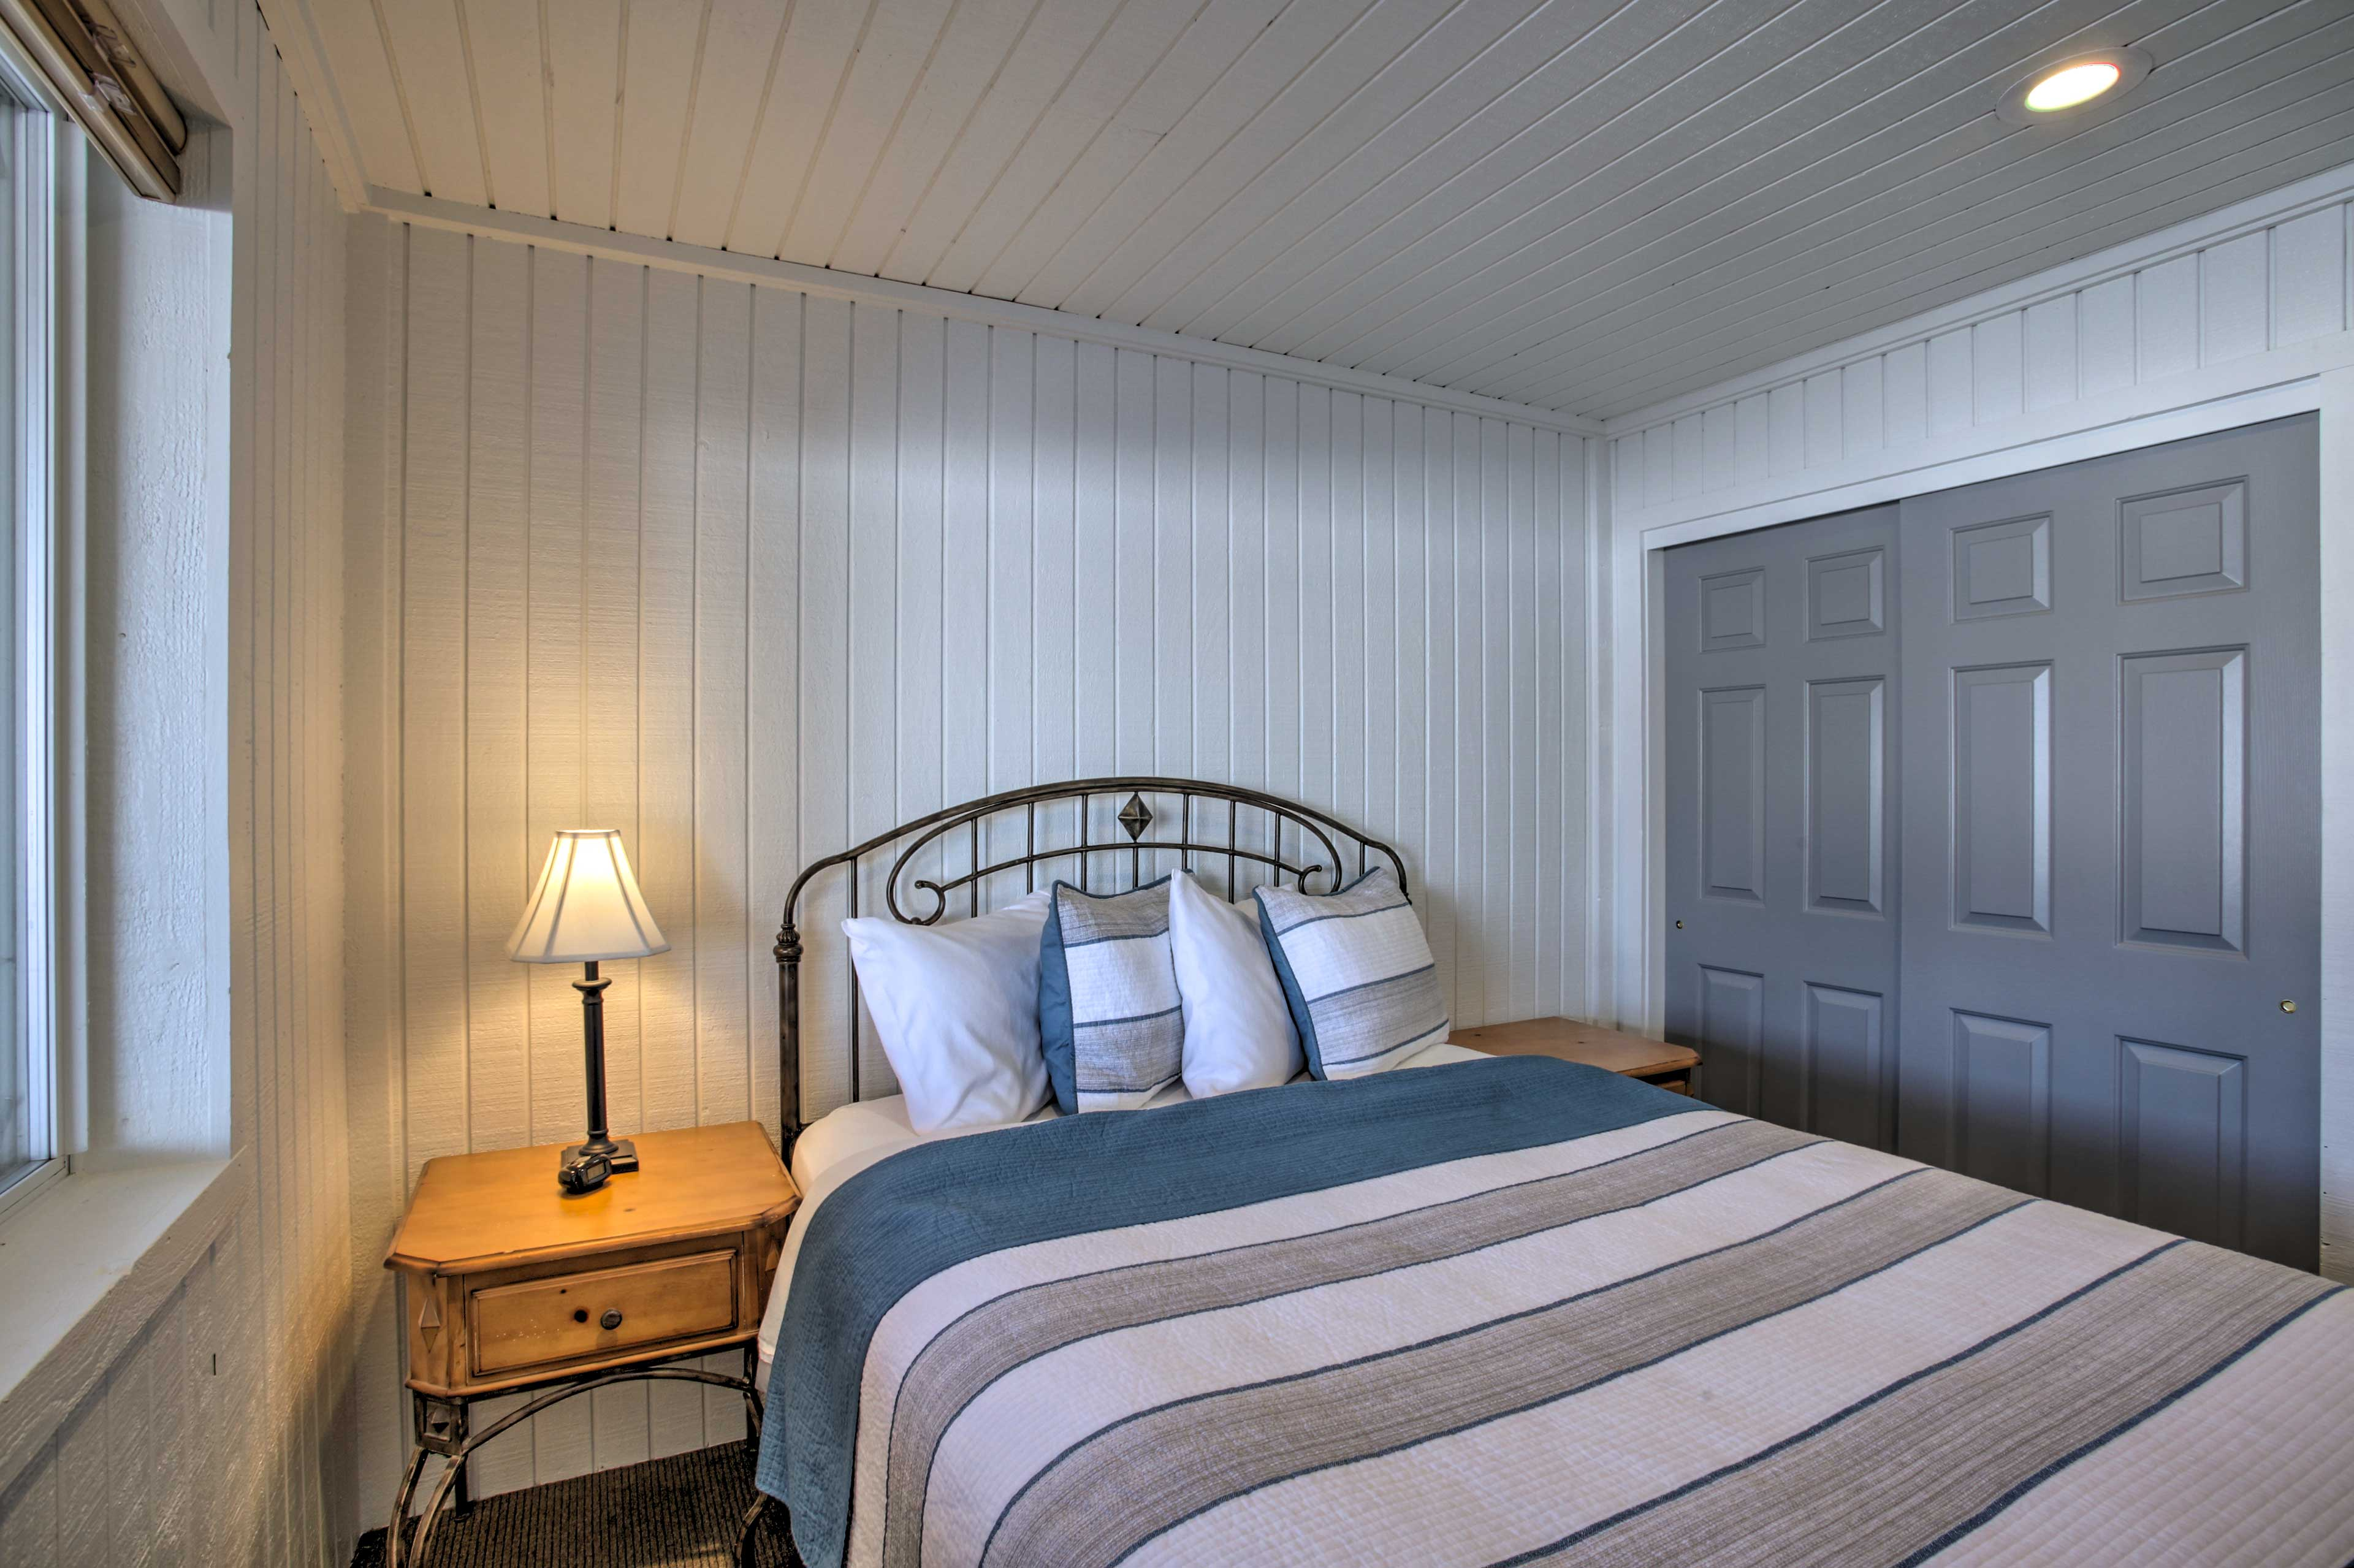 This next bedroom houses a queen-sized bed.